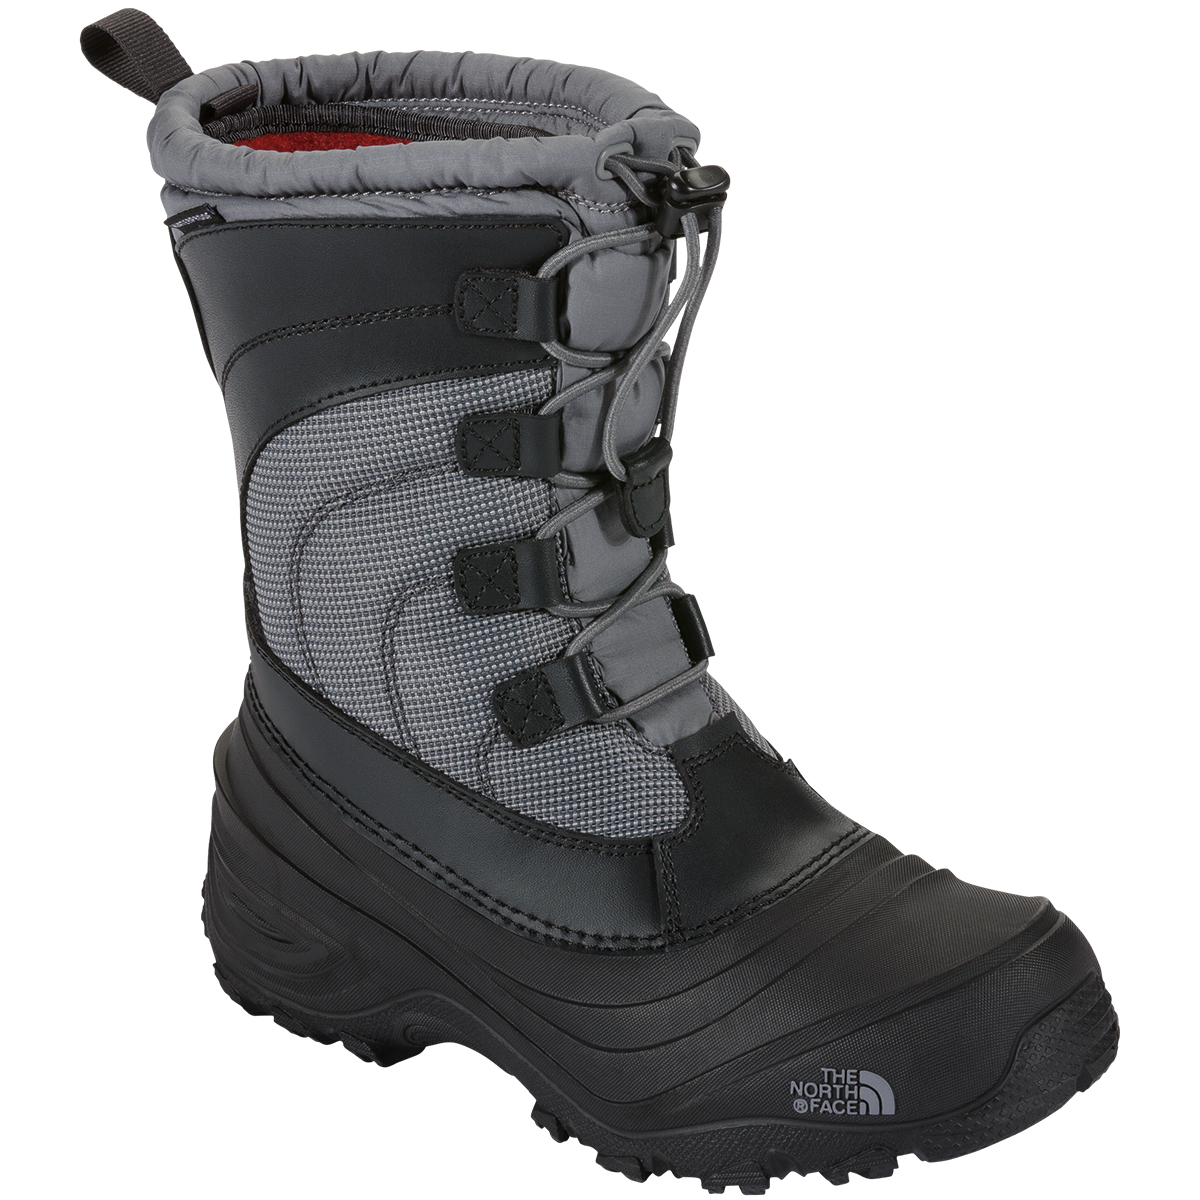 The North Face Kids' Alpenglow Iv Winter Boot - Black, 6